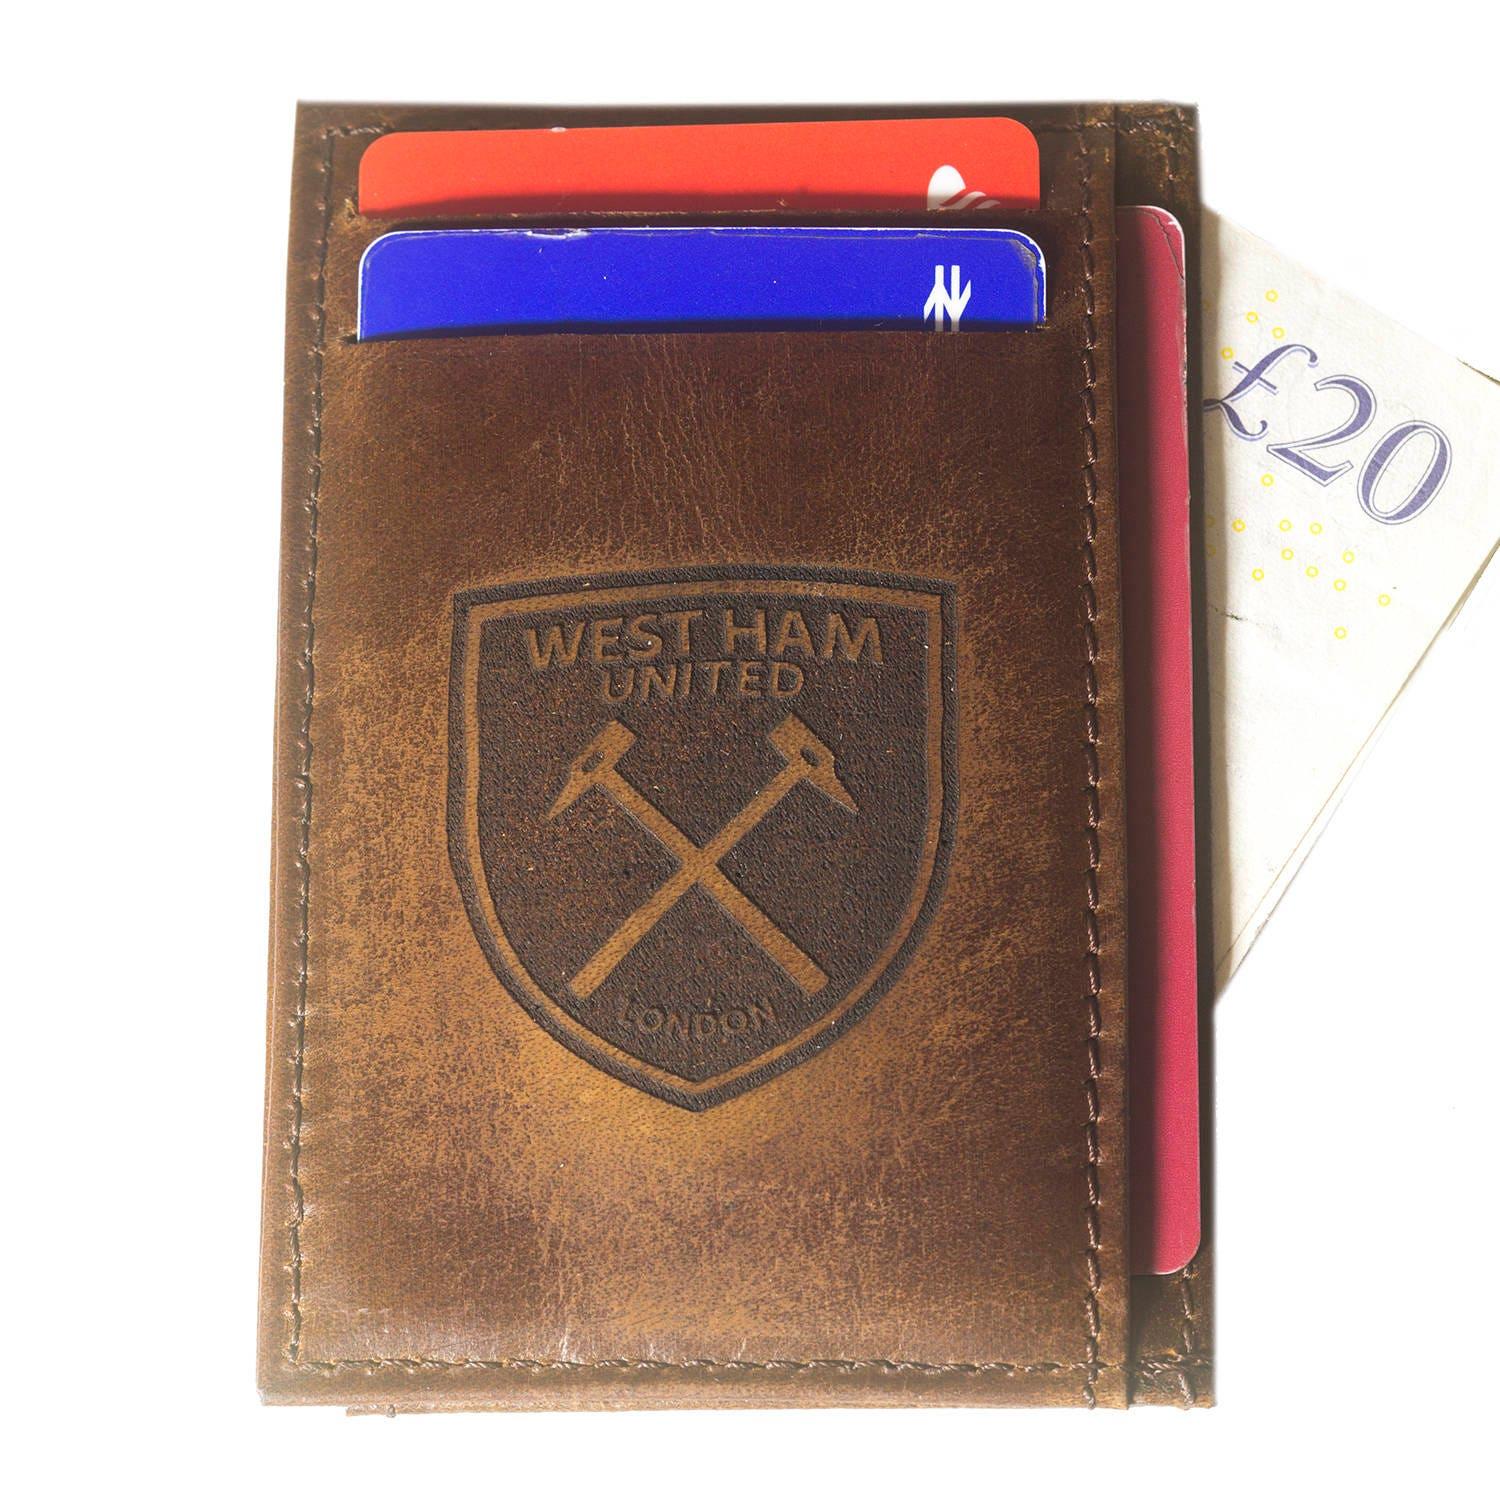 West ham fc real leather credit id business card holder oyster west ham fc real leather credit id business card holder oyster football club westham united colourmoves